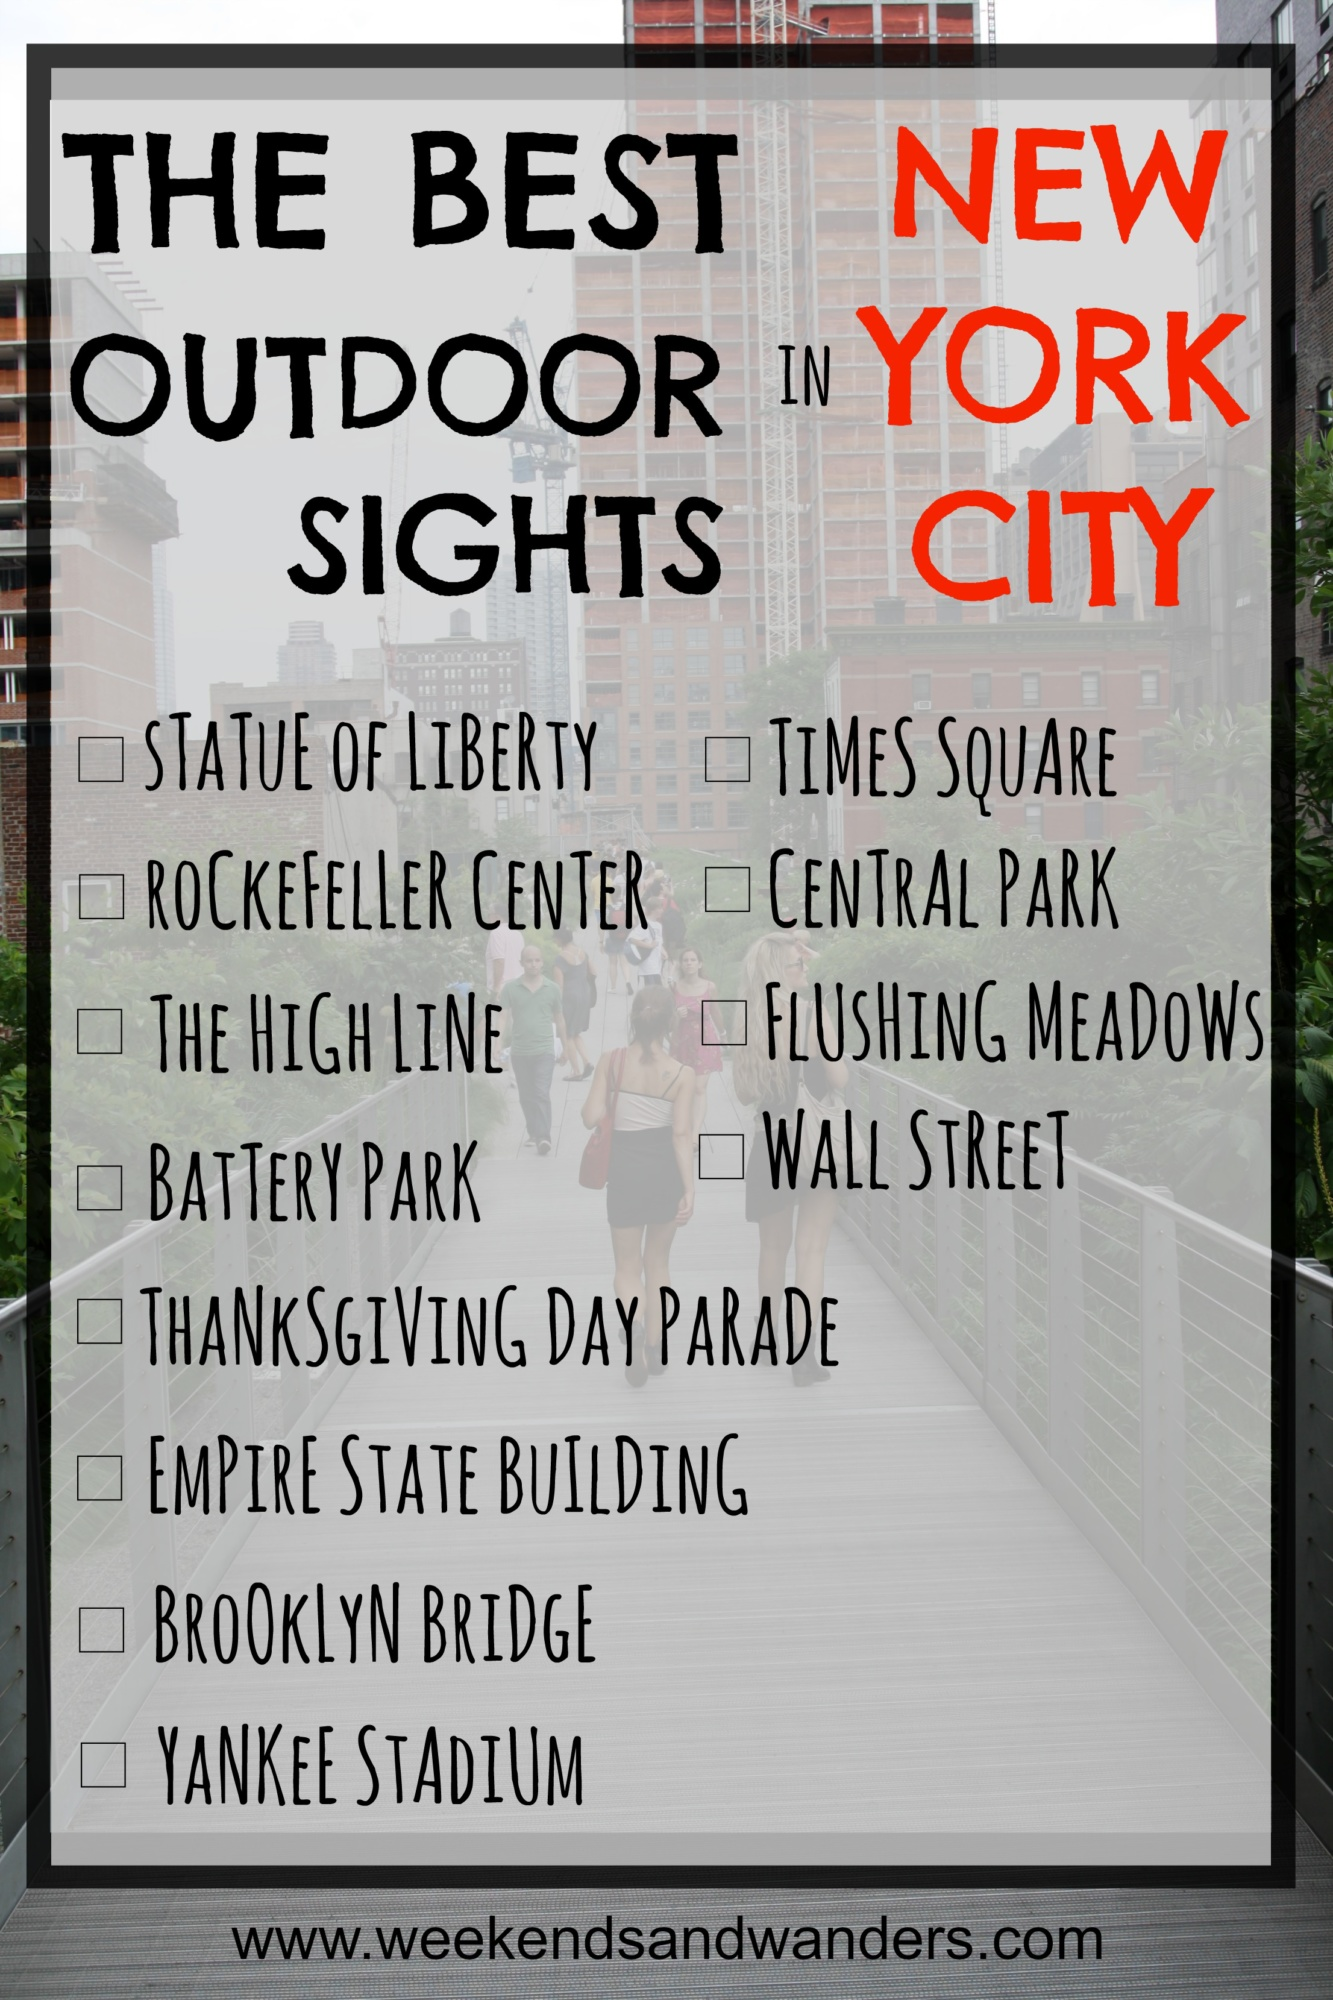 Explore all of our favorite New York City outdoor sights, and add a few of your own! Download our checklist at www.weekendsandwanders.com